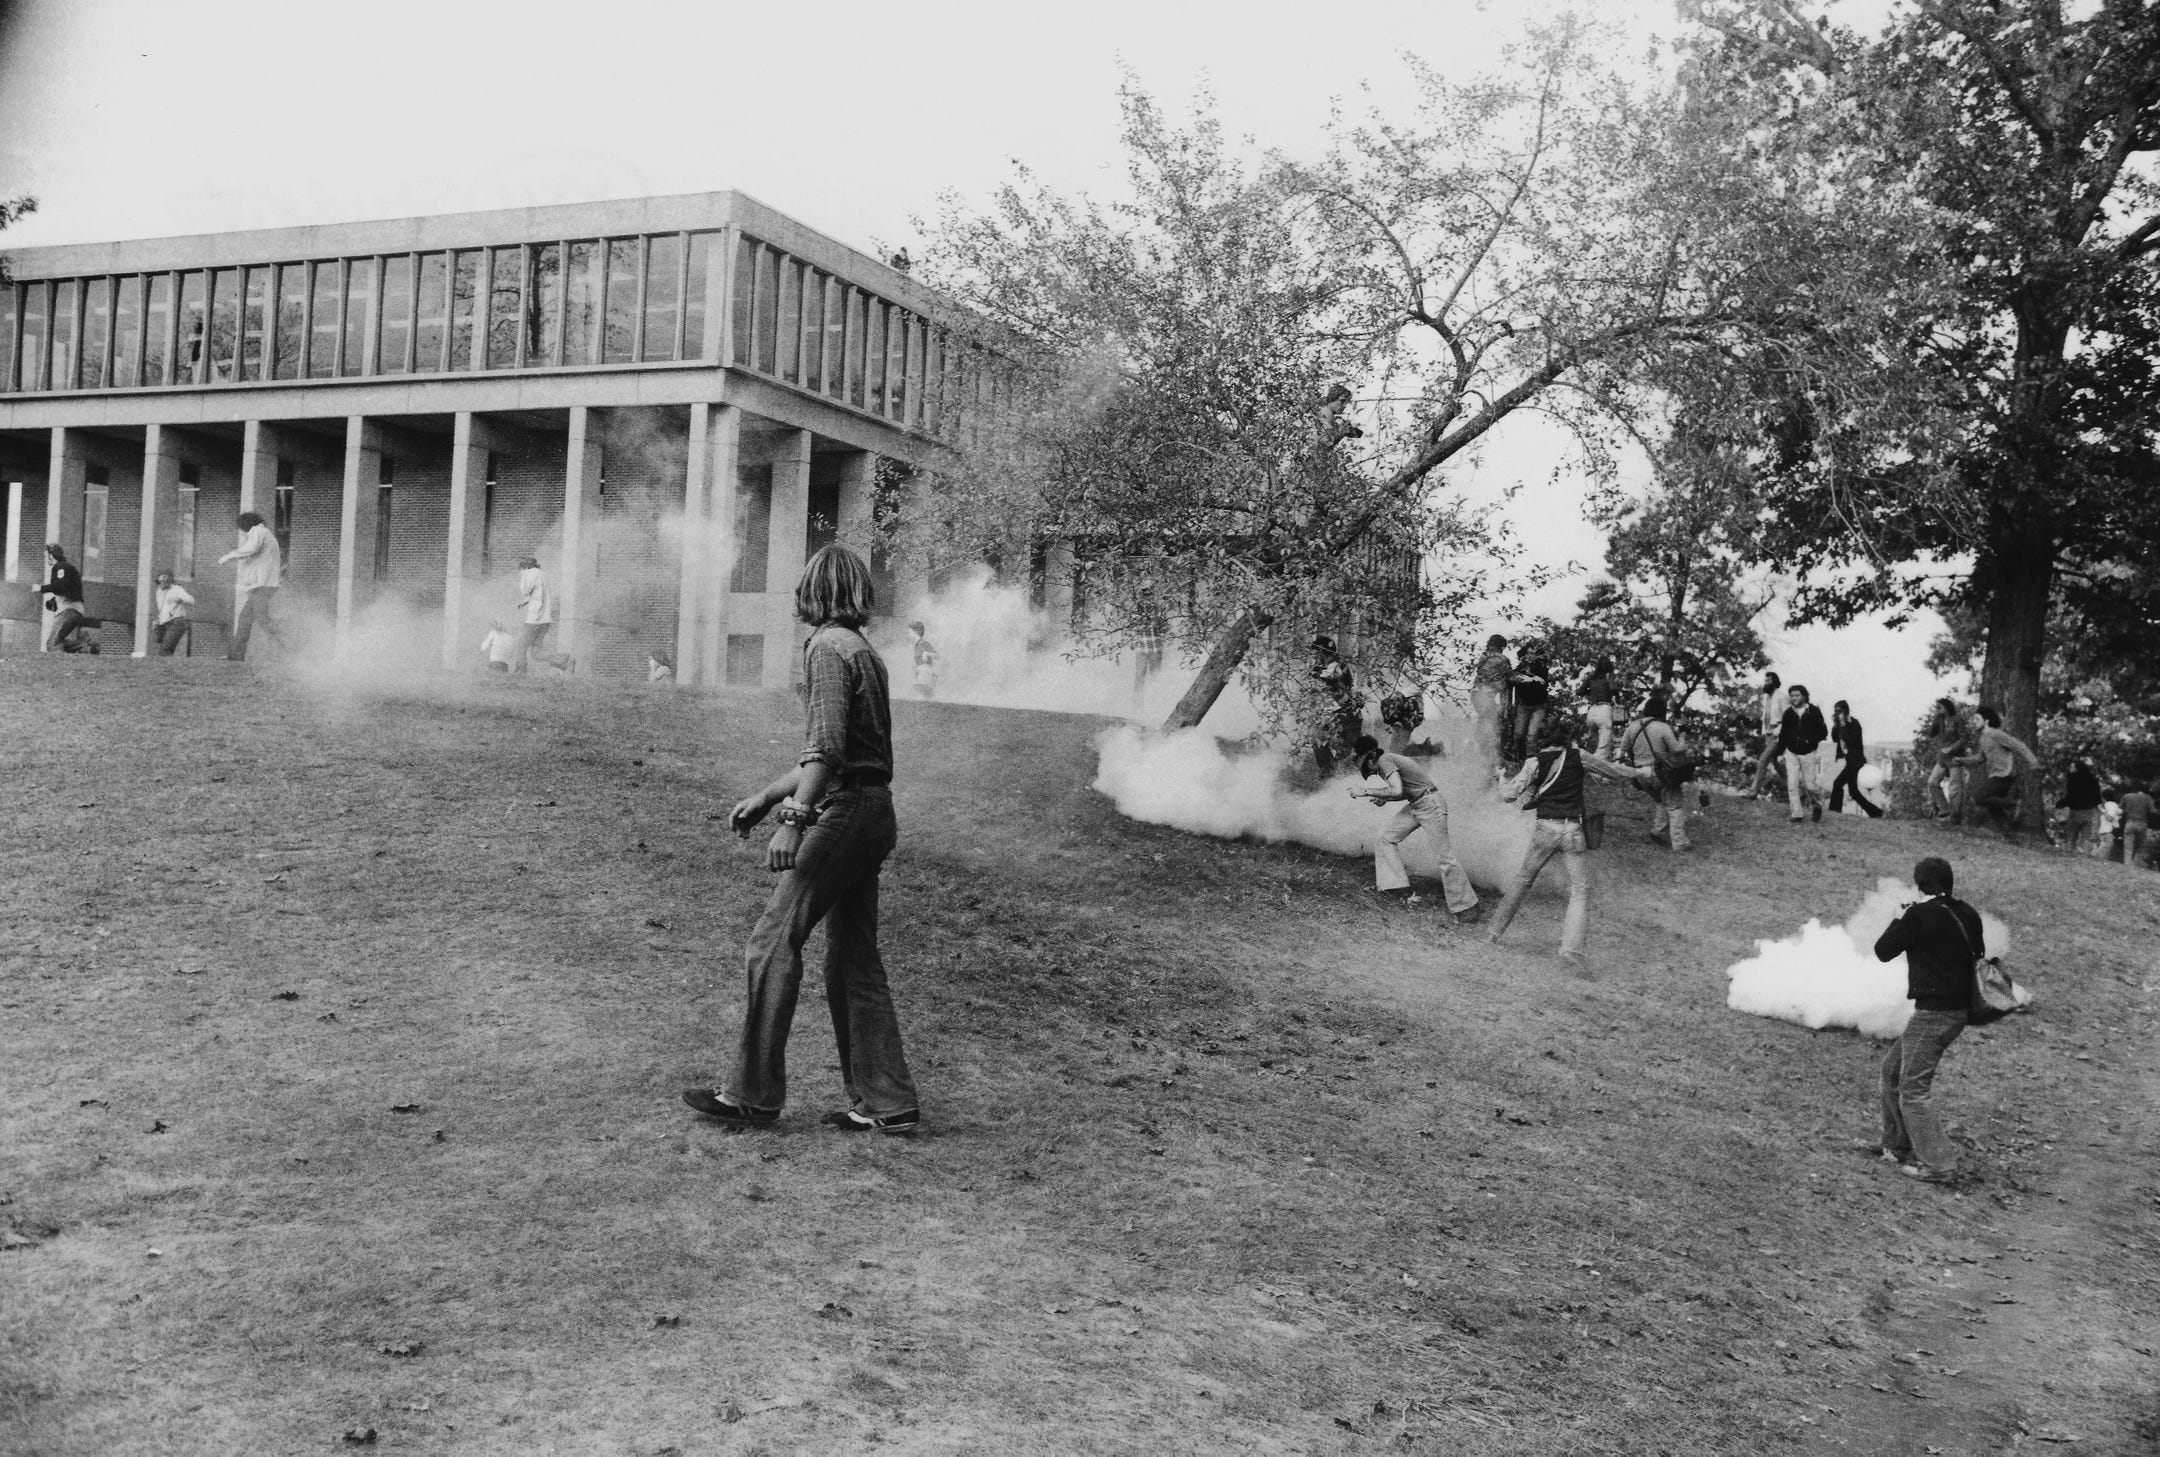 Kent State Halloween 2020 How Kent State endured the 1970 shootings to embrace its tragic past